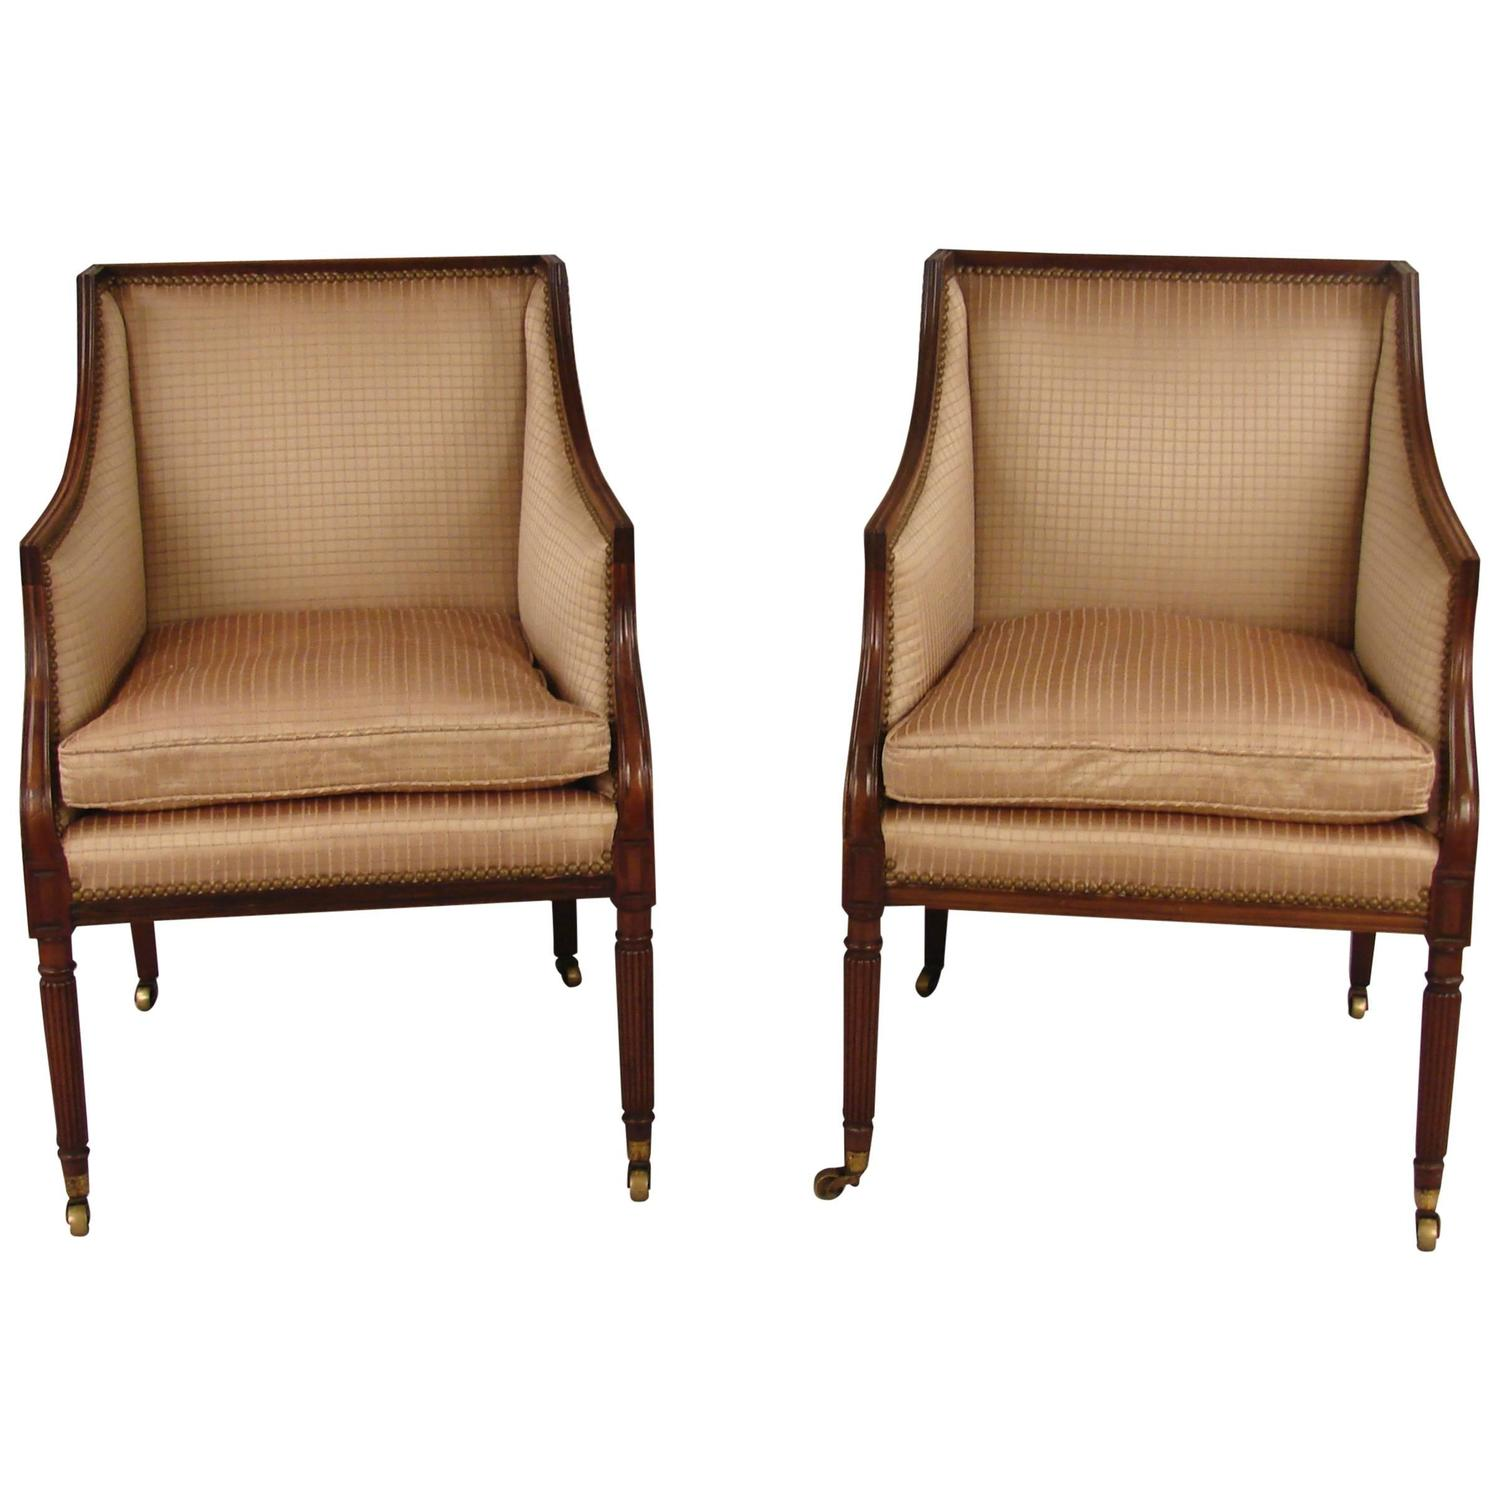 Upholstered Arm Chairs Pair Of Regency Style Upholstered Arm Chairs At 1stdibs